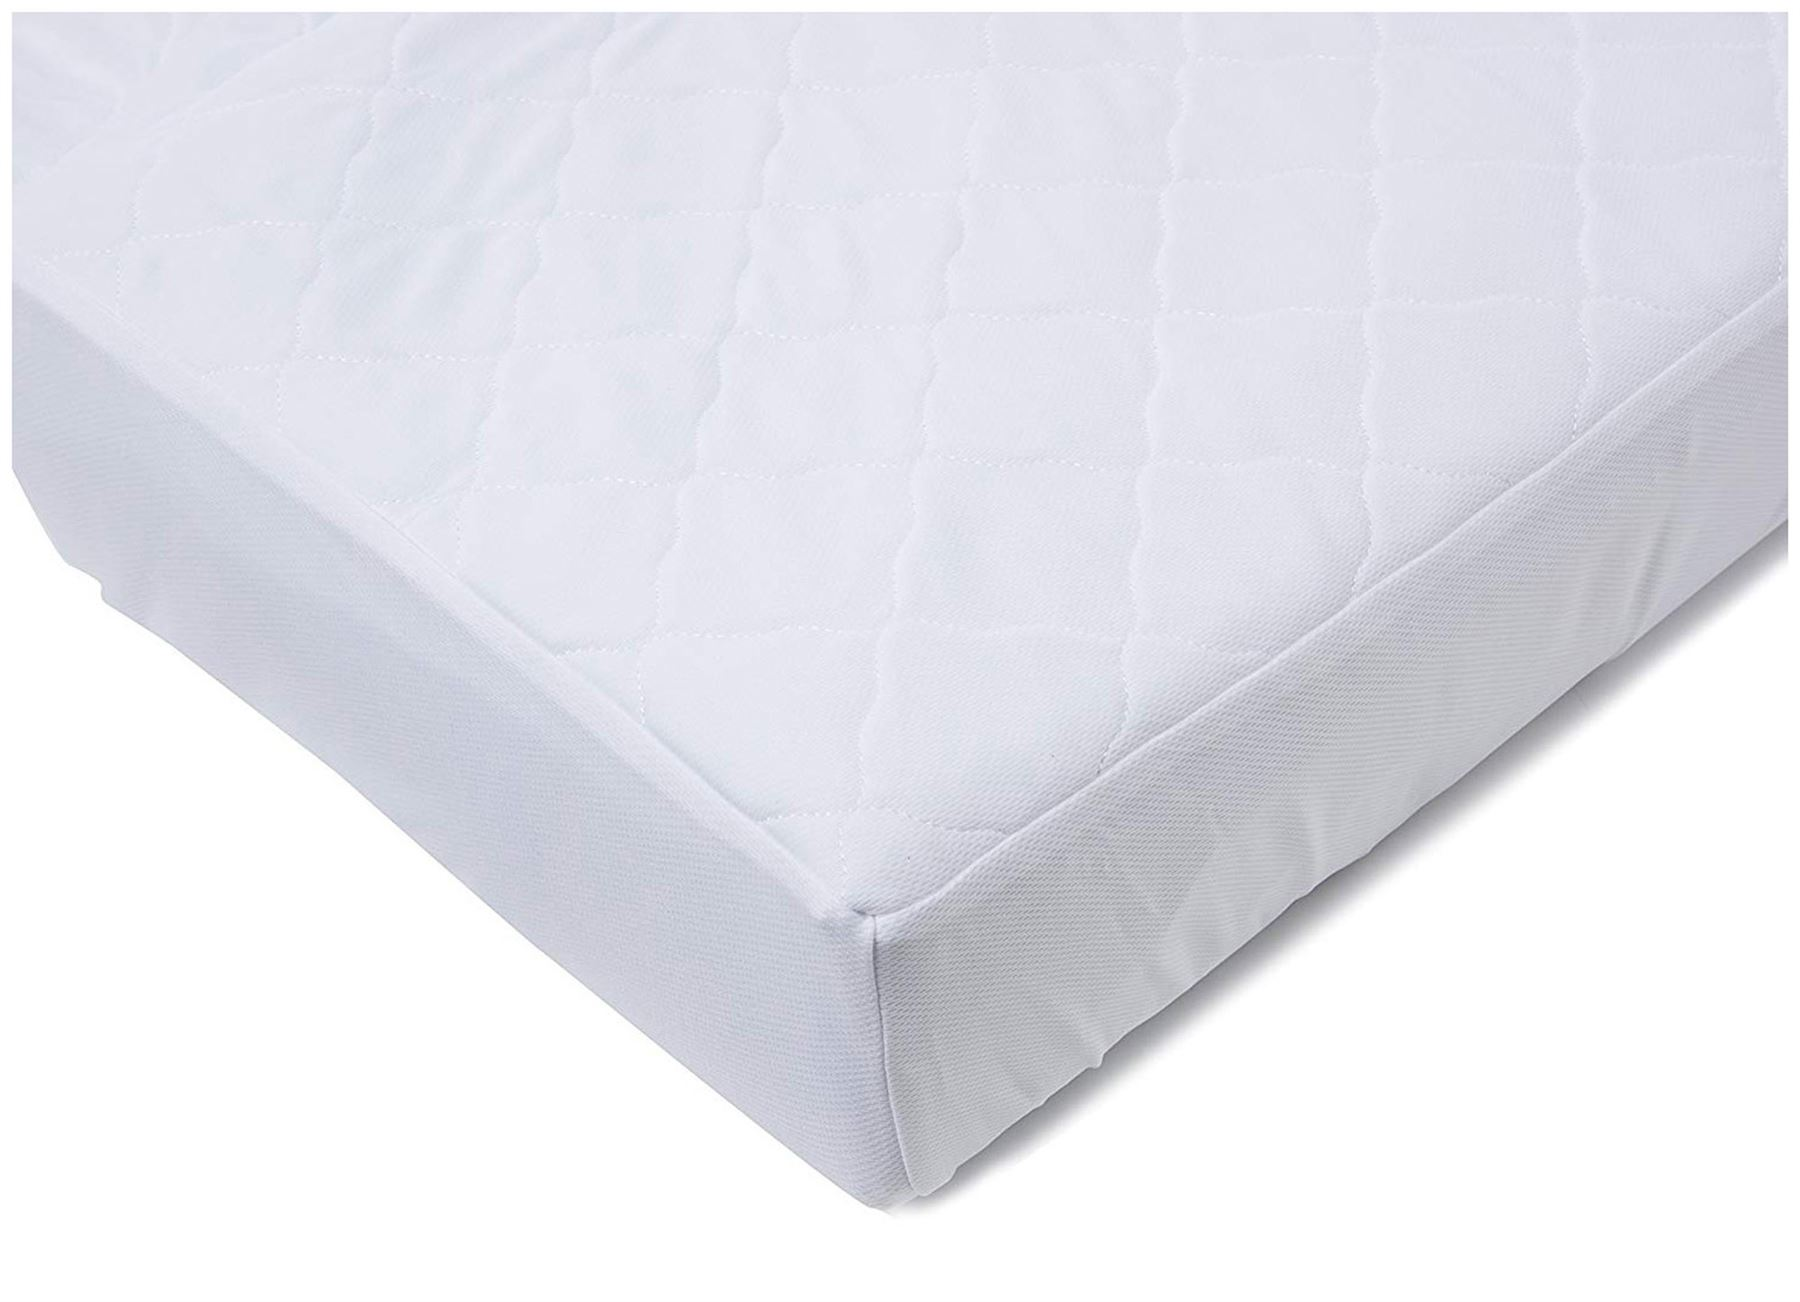 wholesale dealer cab87 07dab Details about Breathable Baby 3 IN 1 MATTRESS PROTECTOR - COT BED Baby  Child Waterproof